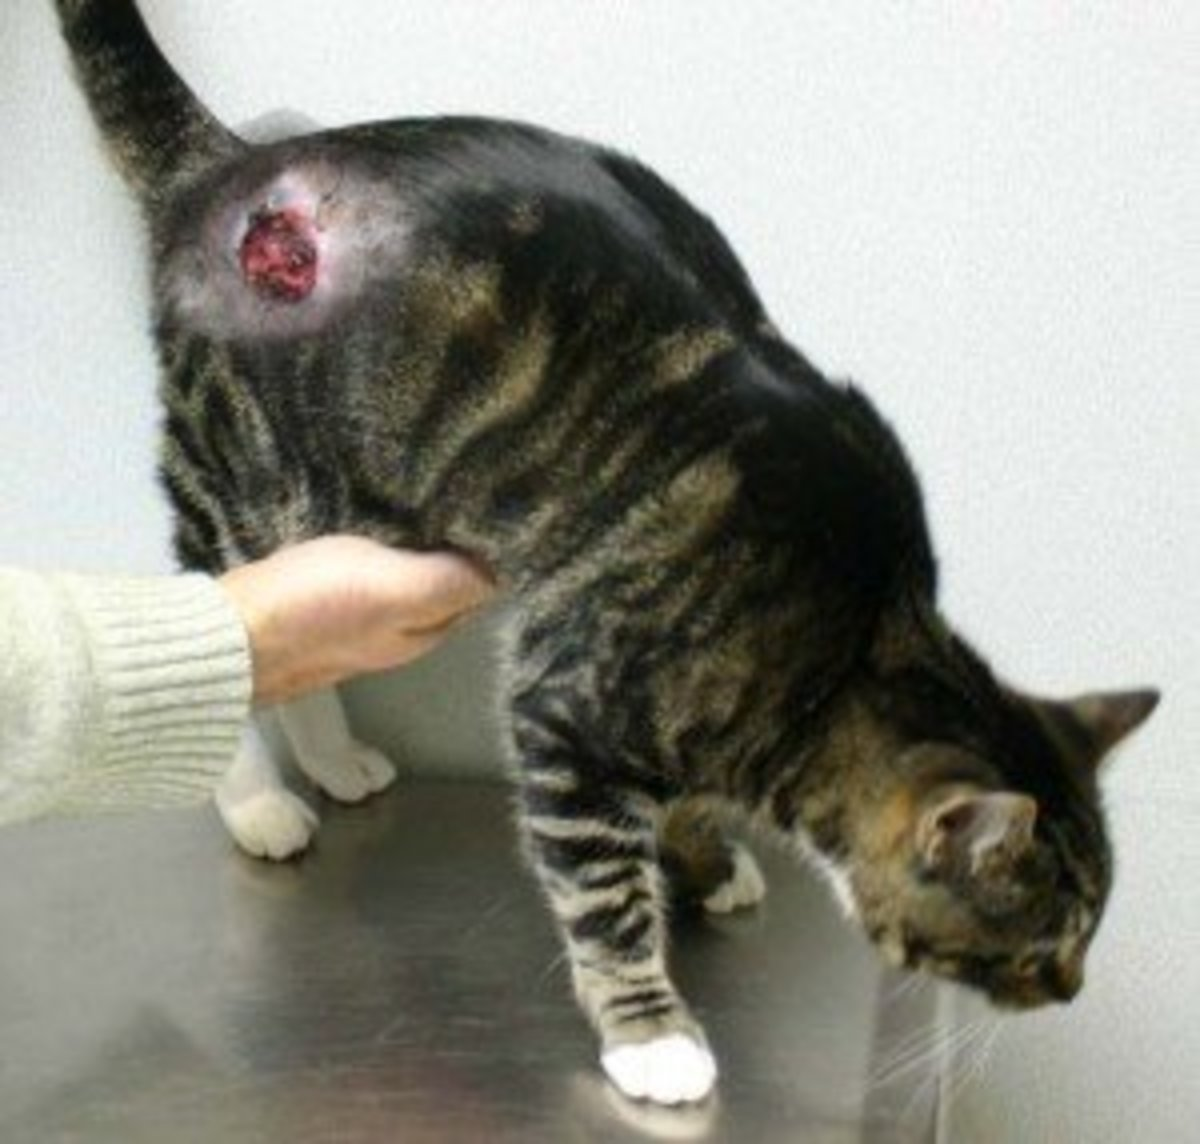 What a Cat Abscess Looks Like